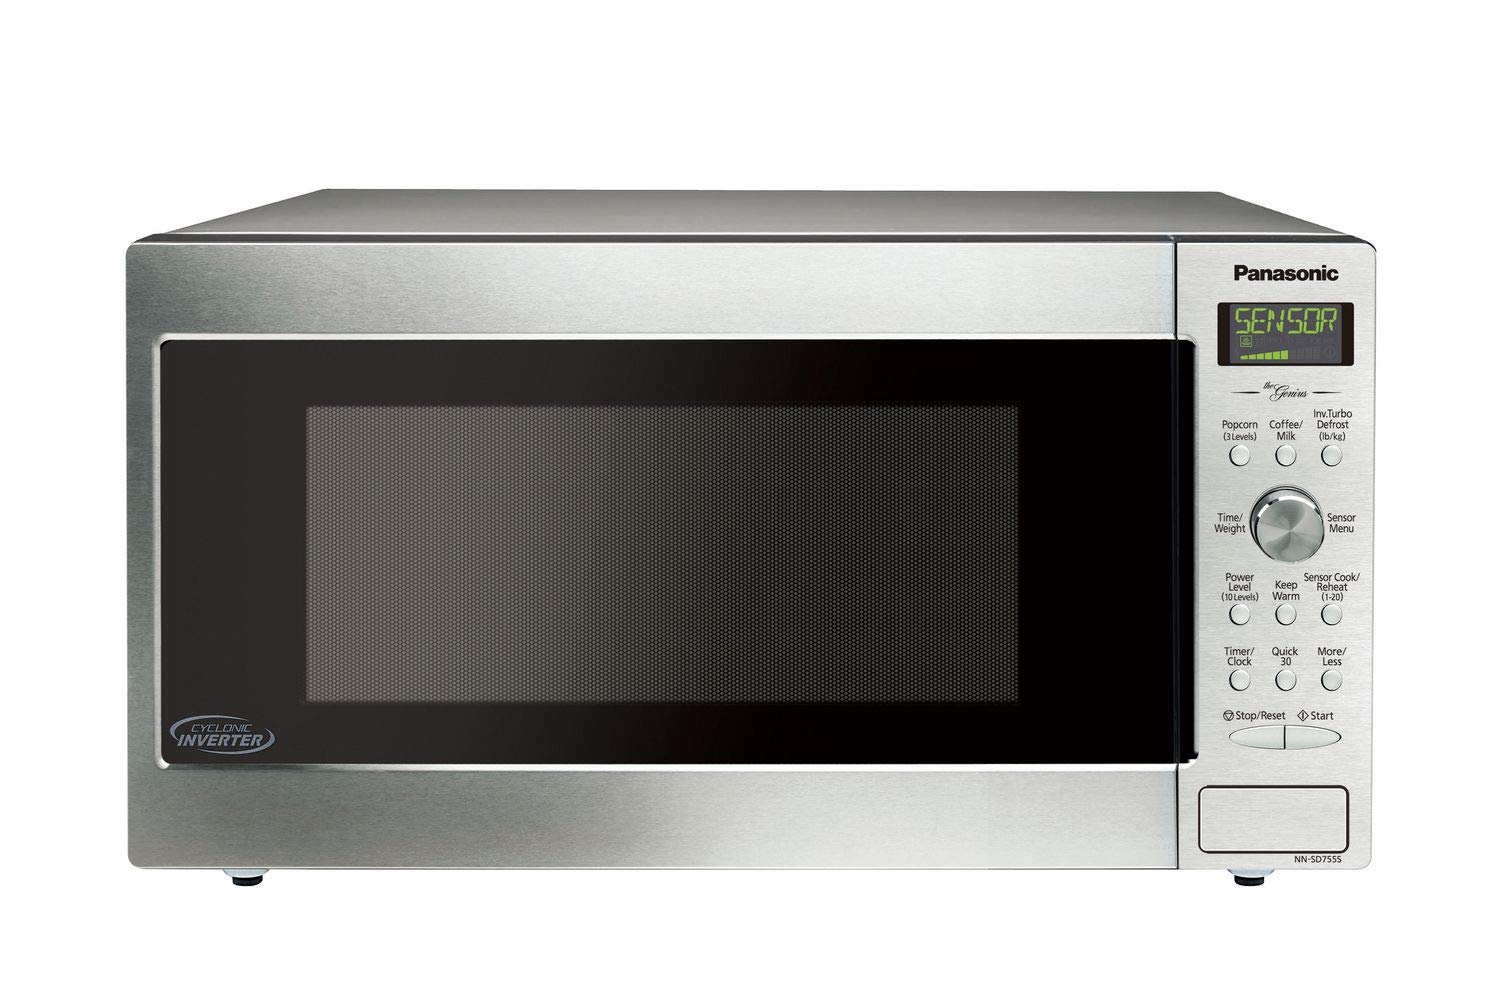 Panasonic NN SD755S NN SD765S Technology Microwave